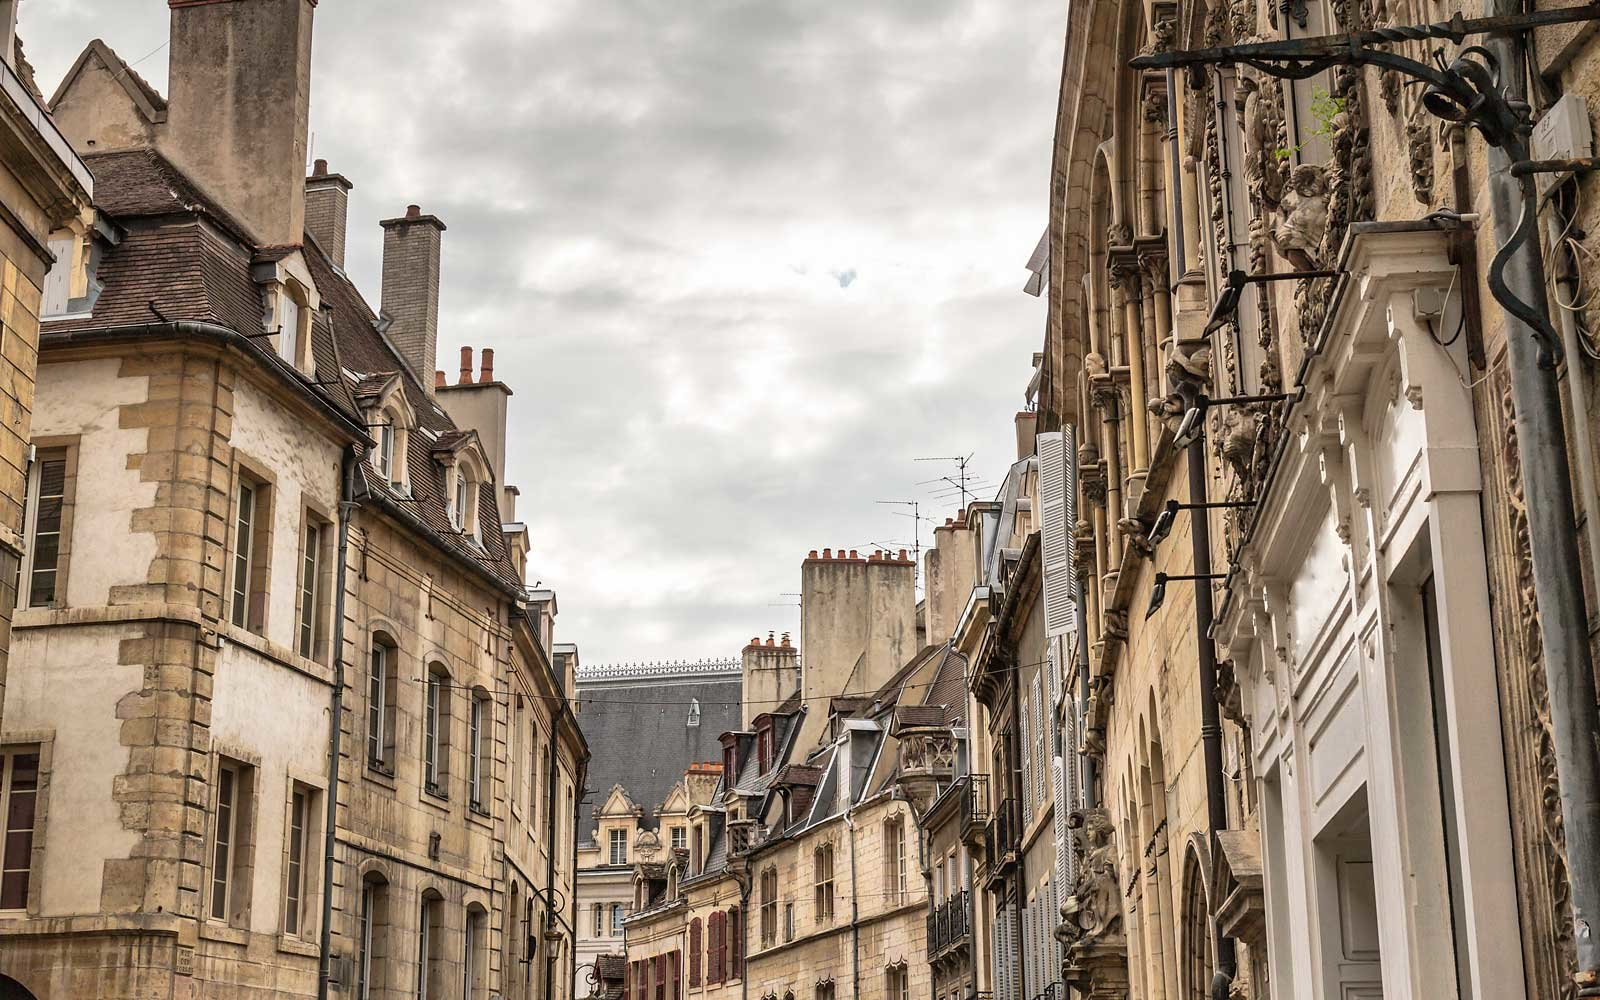 Old french street in Dijon, France